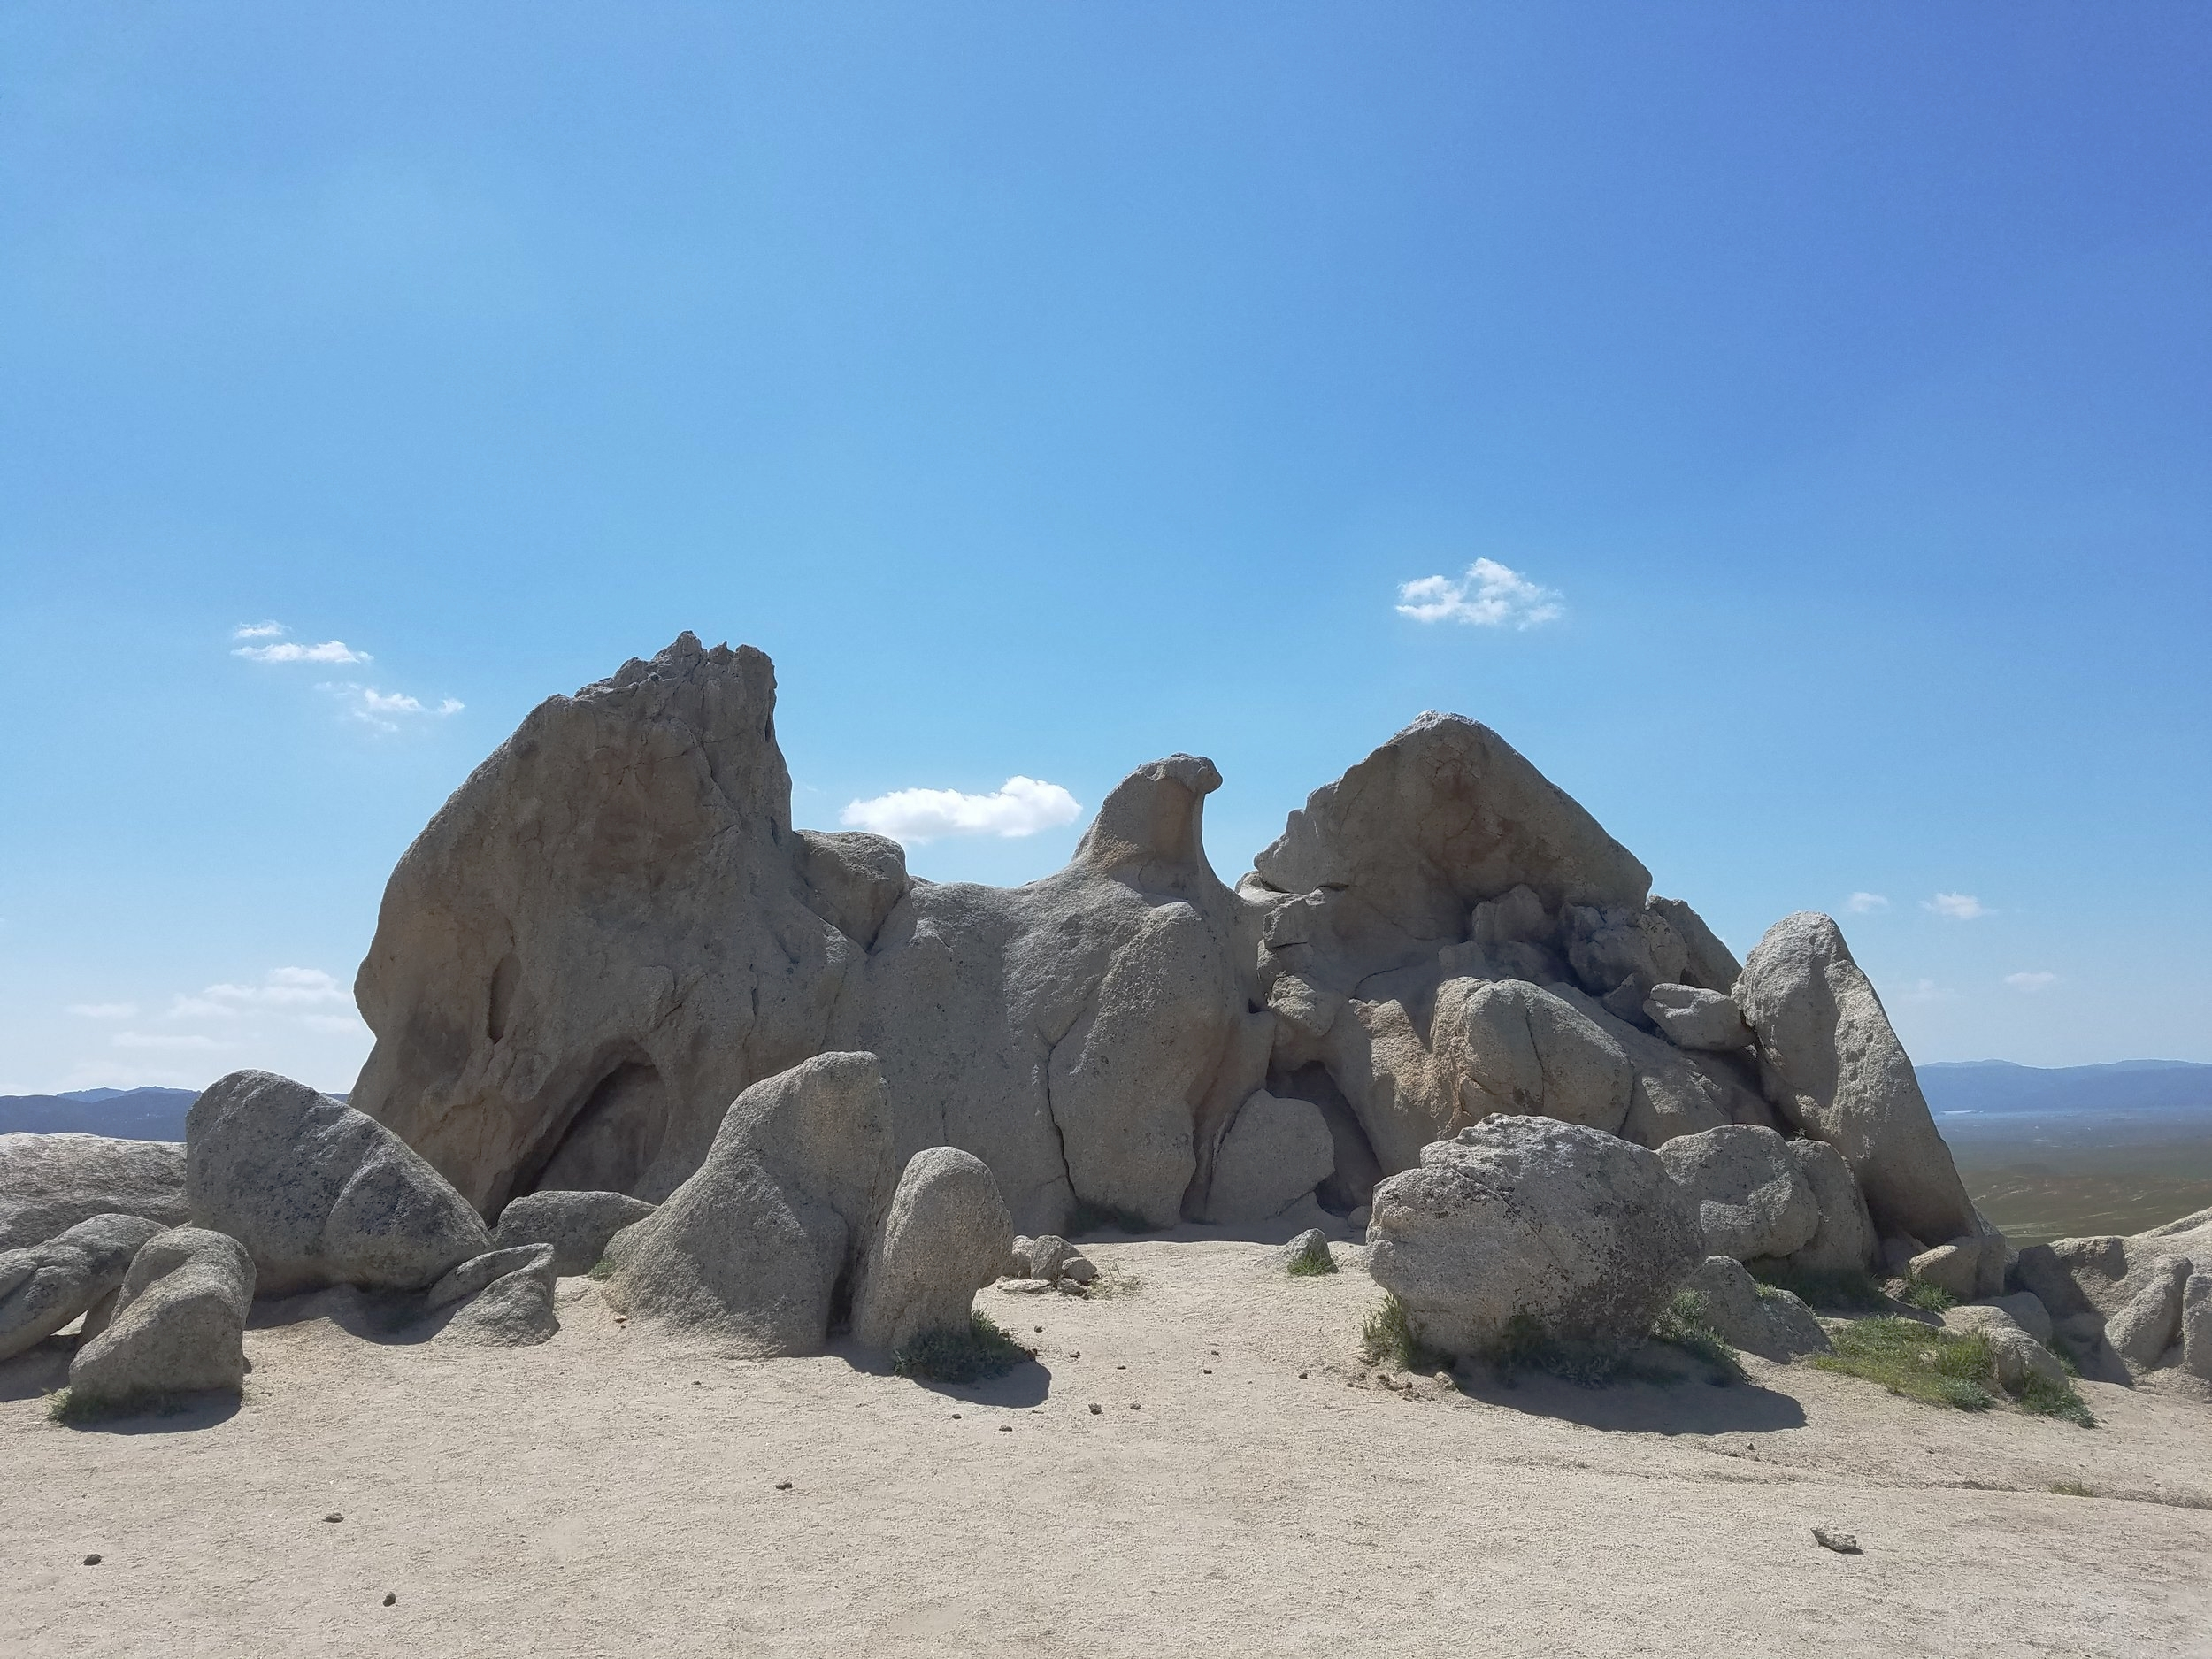 The aptly named, Eagle Rock.